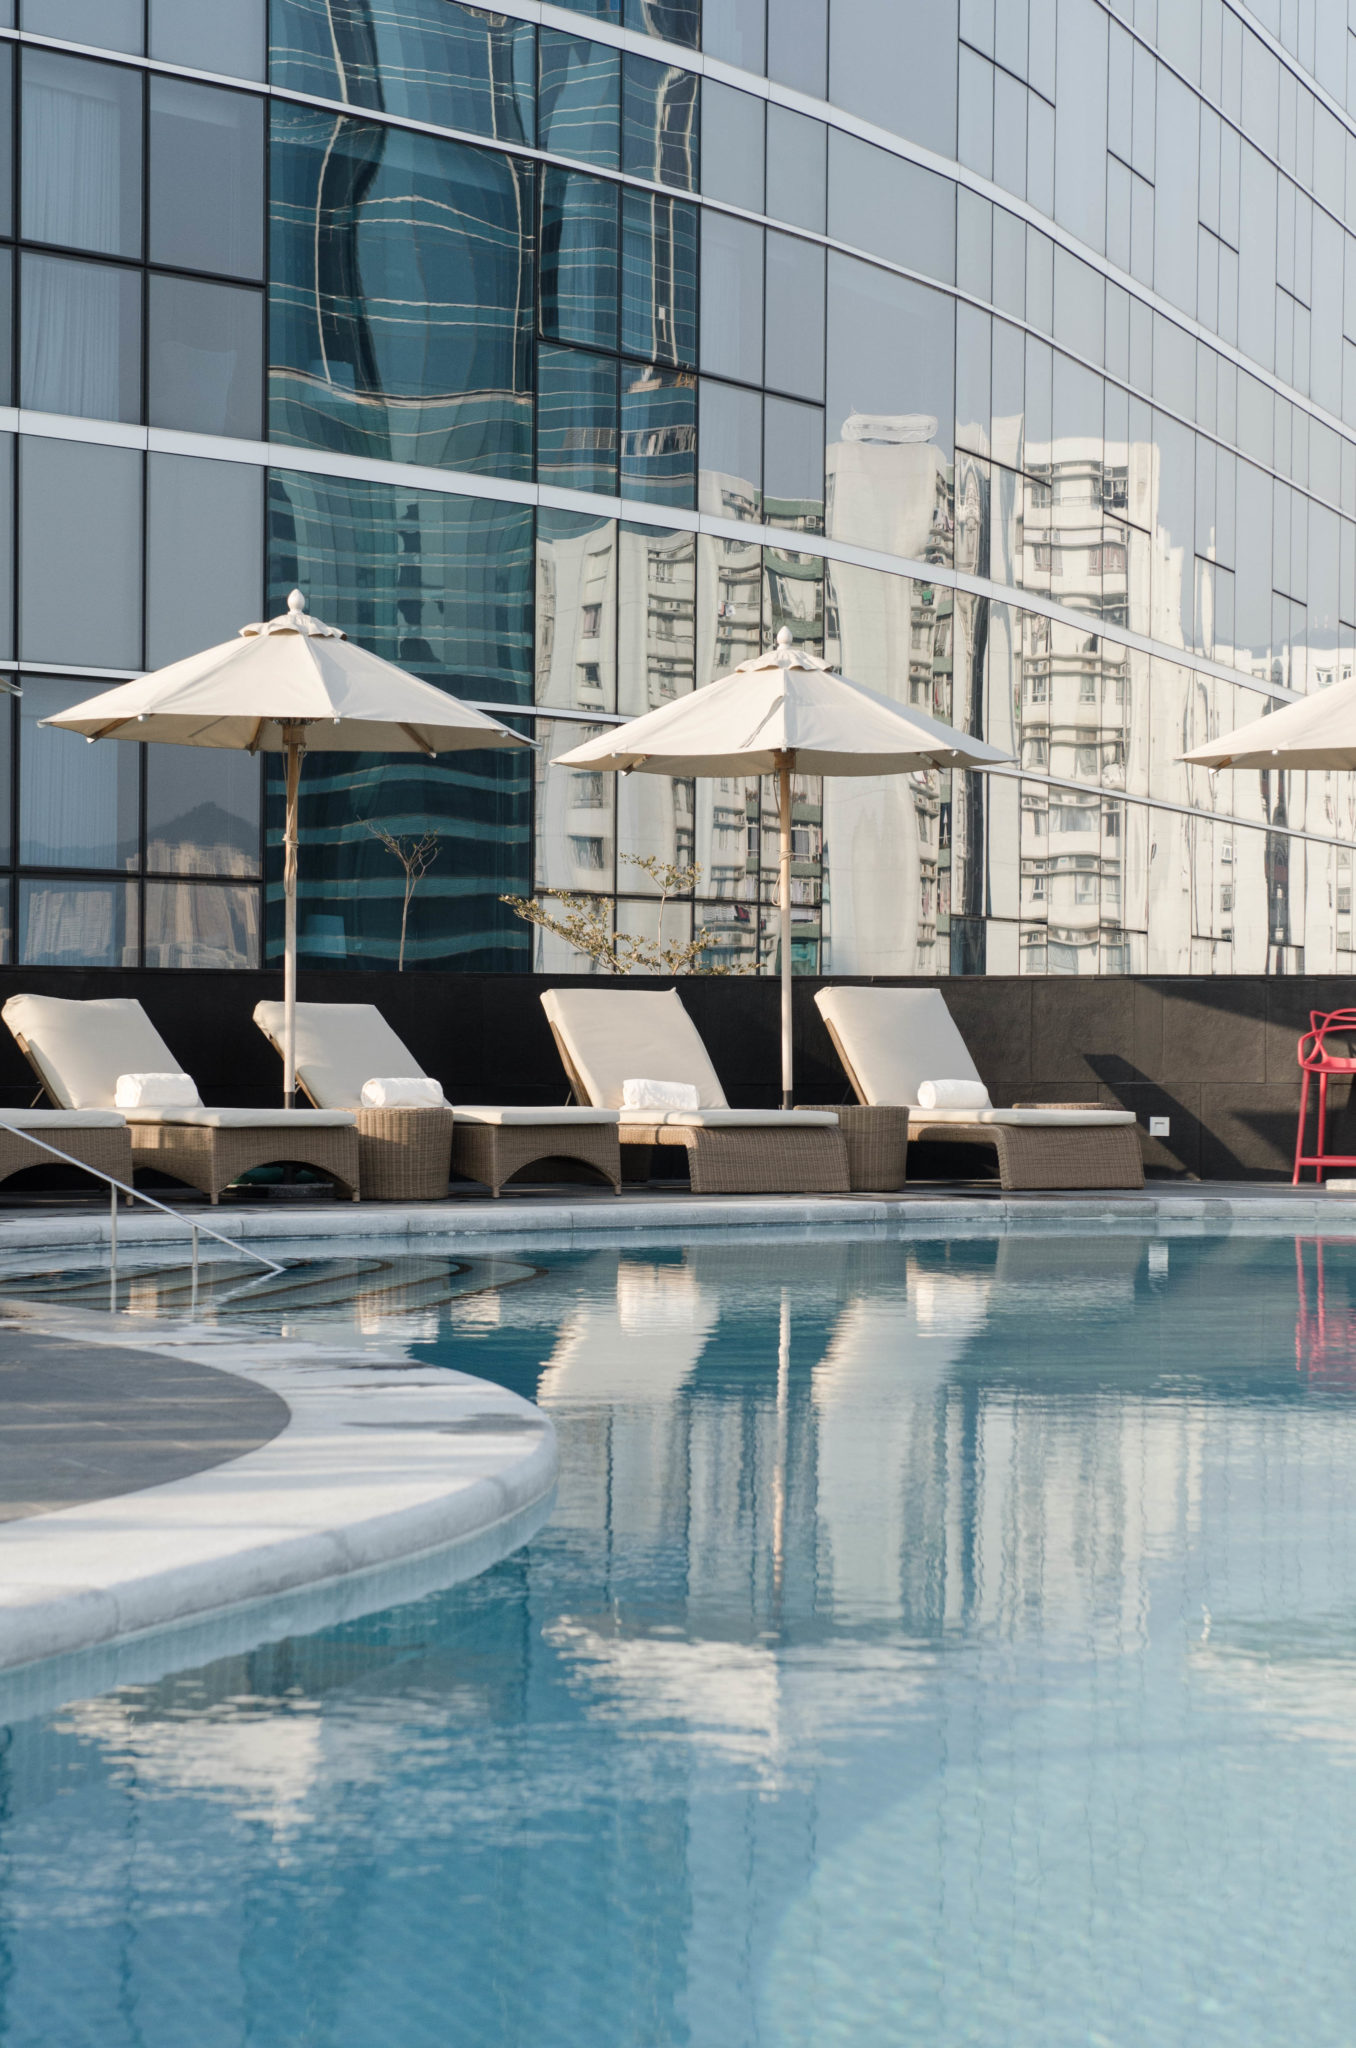 The pool at the Kerry Hotel Hong Kong in Hung Hom is amazingly located.